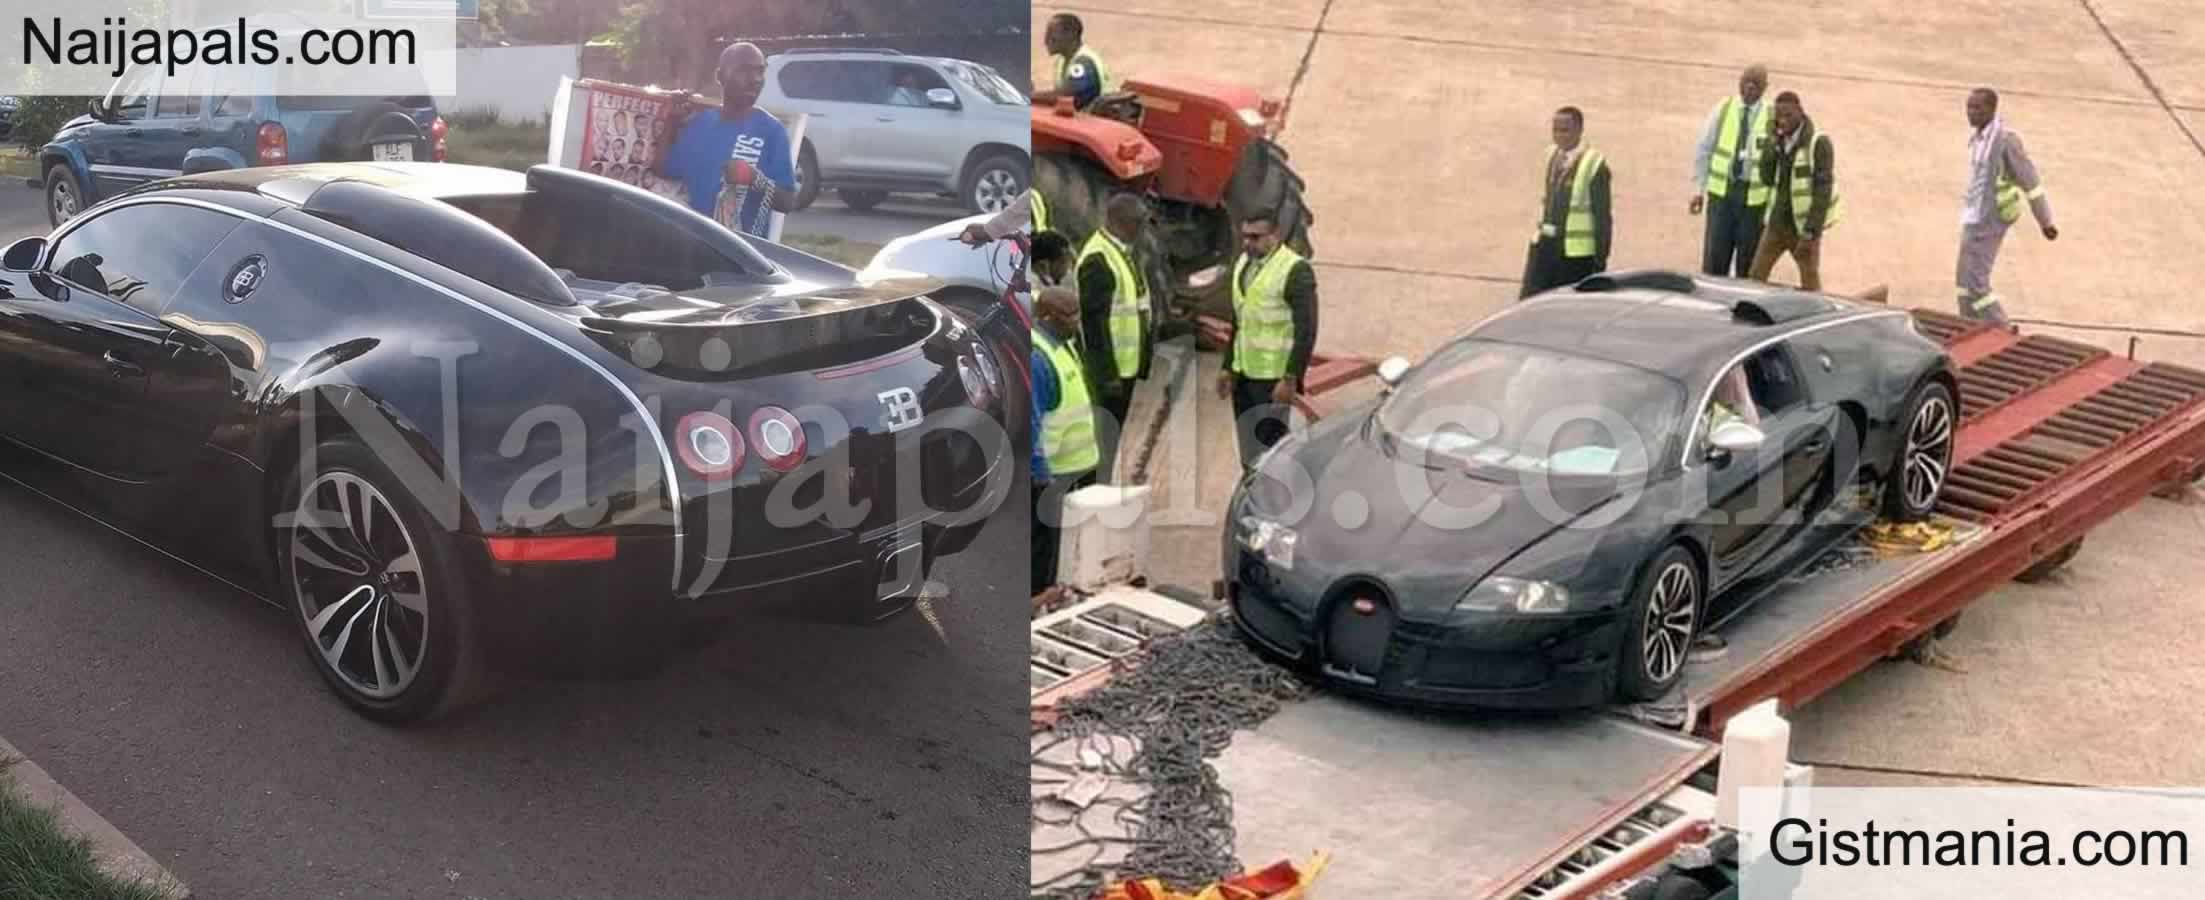 Zambia Authorities Investigate Source Of Income Of Owner Of $2.8m Bugatti Veryon - Gistmania